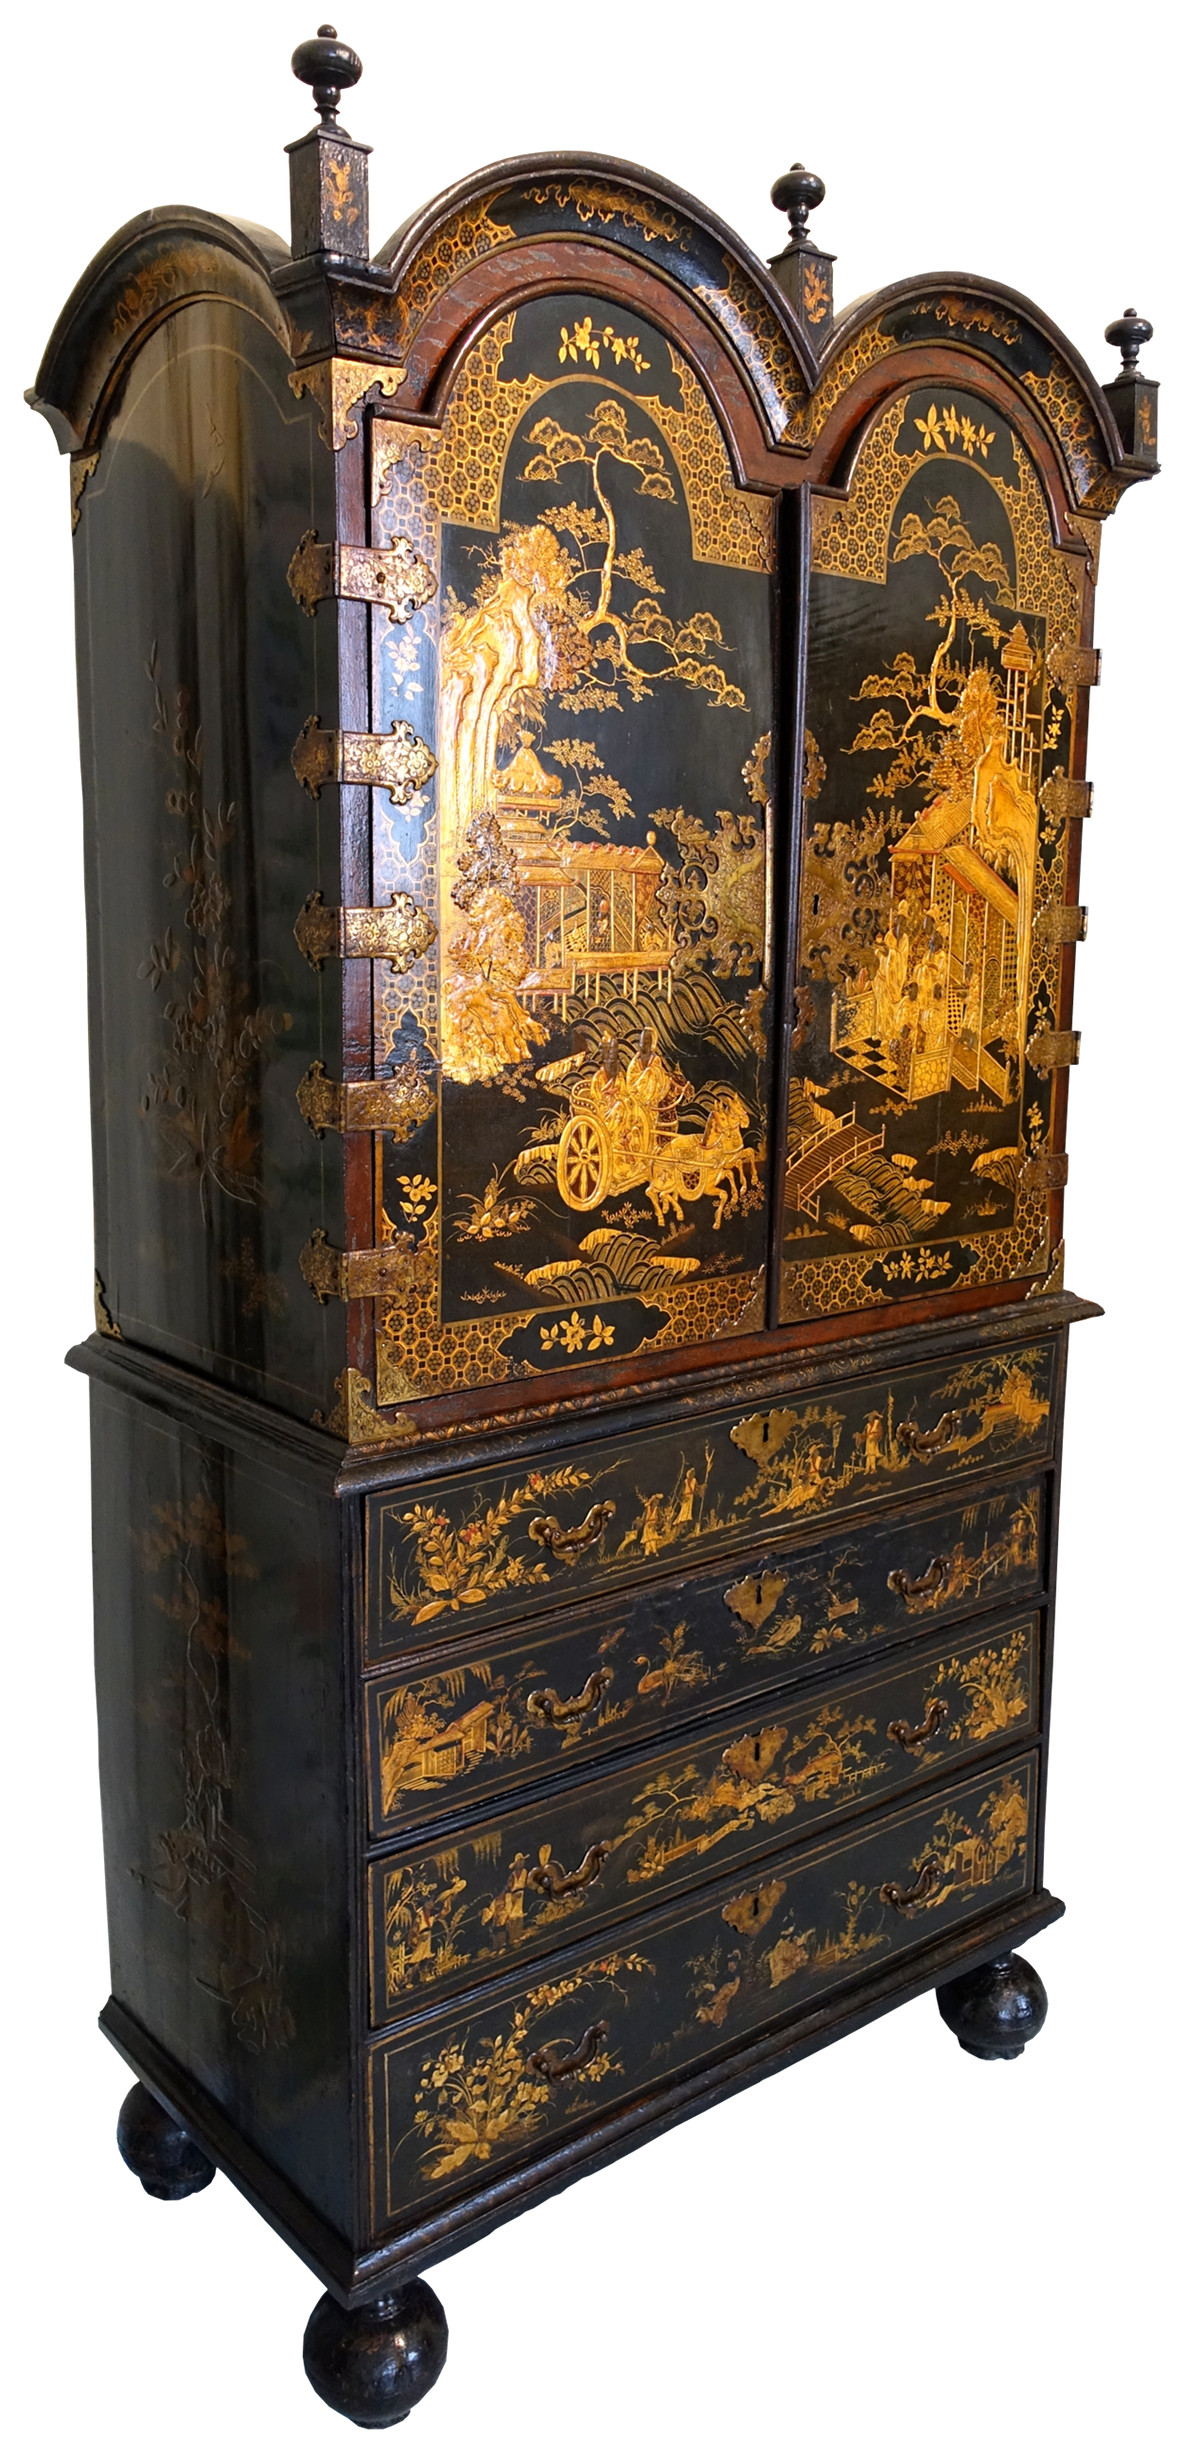 Chinoiserie cabinet. Museo Nacional de Artes Decorativas, Madrid, Spain. Credit Daderot.